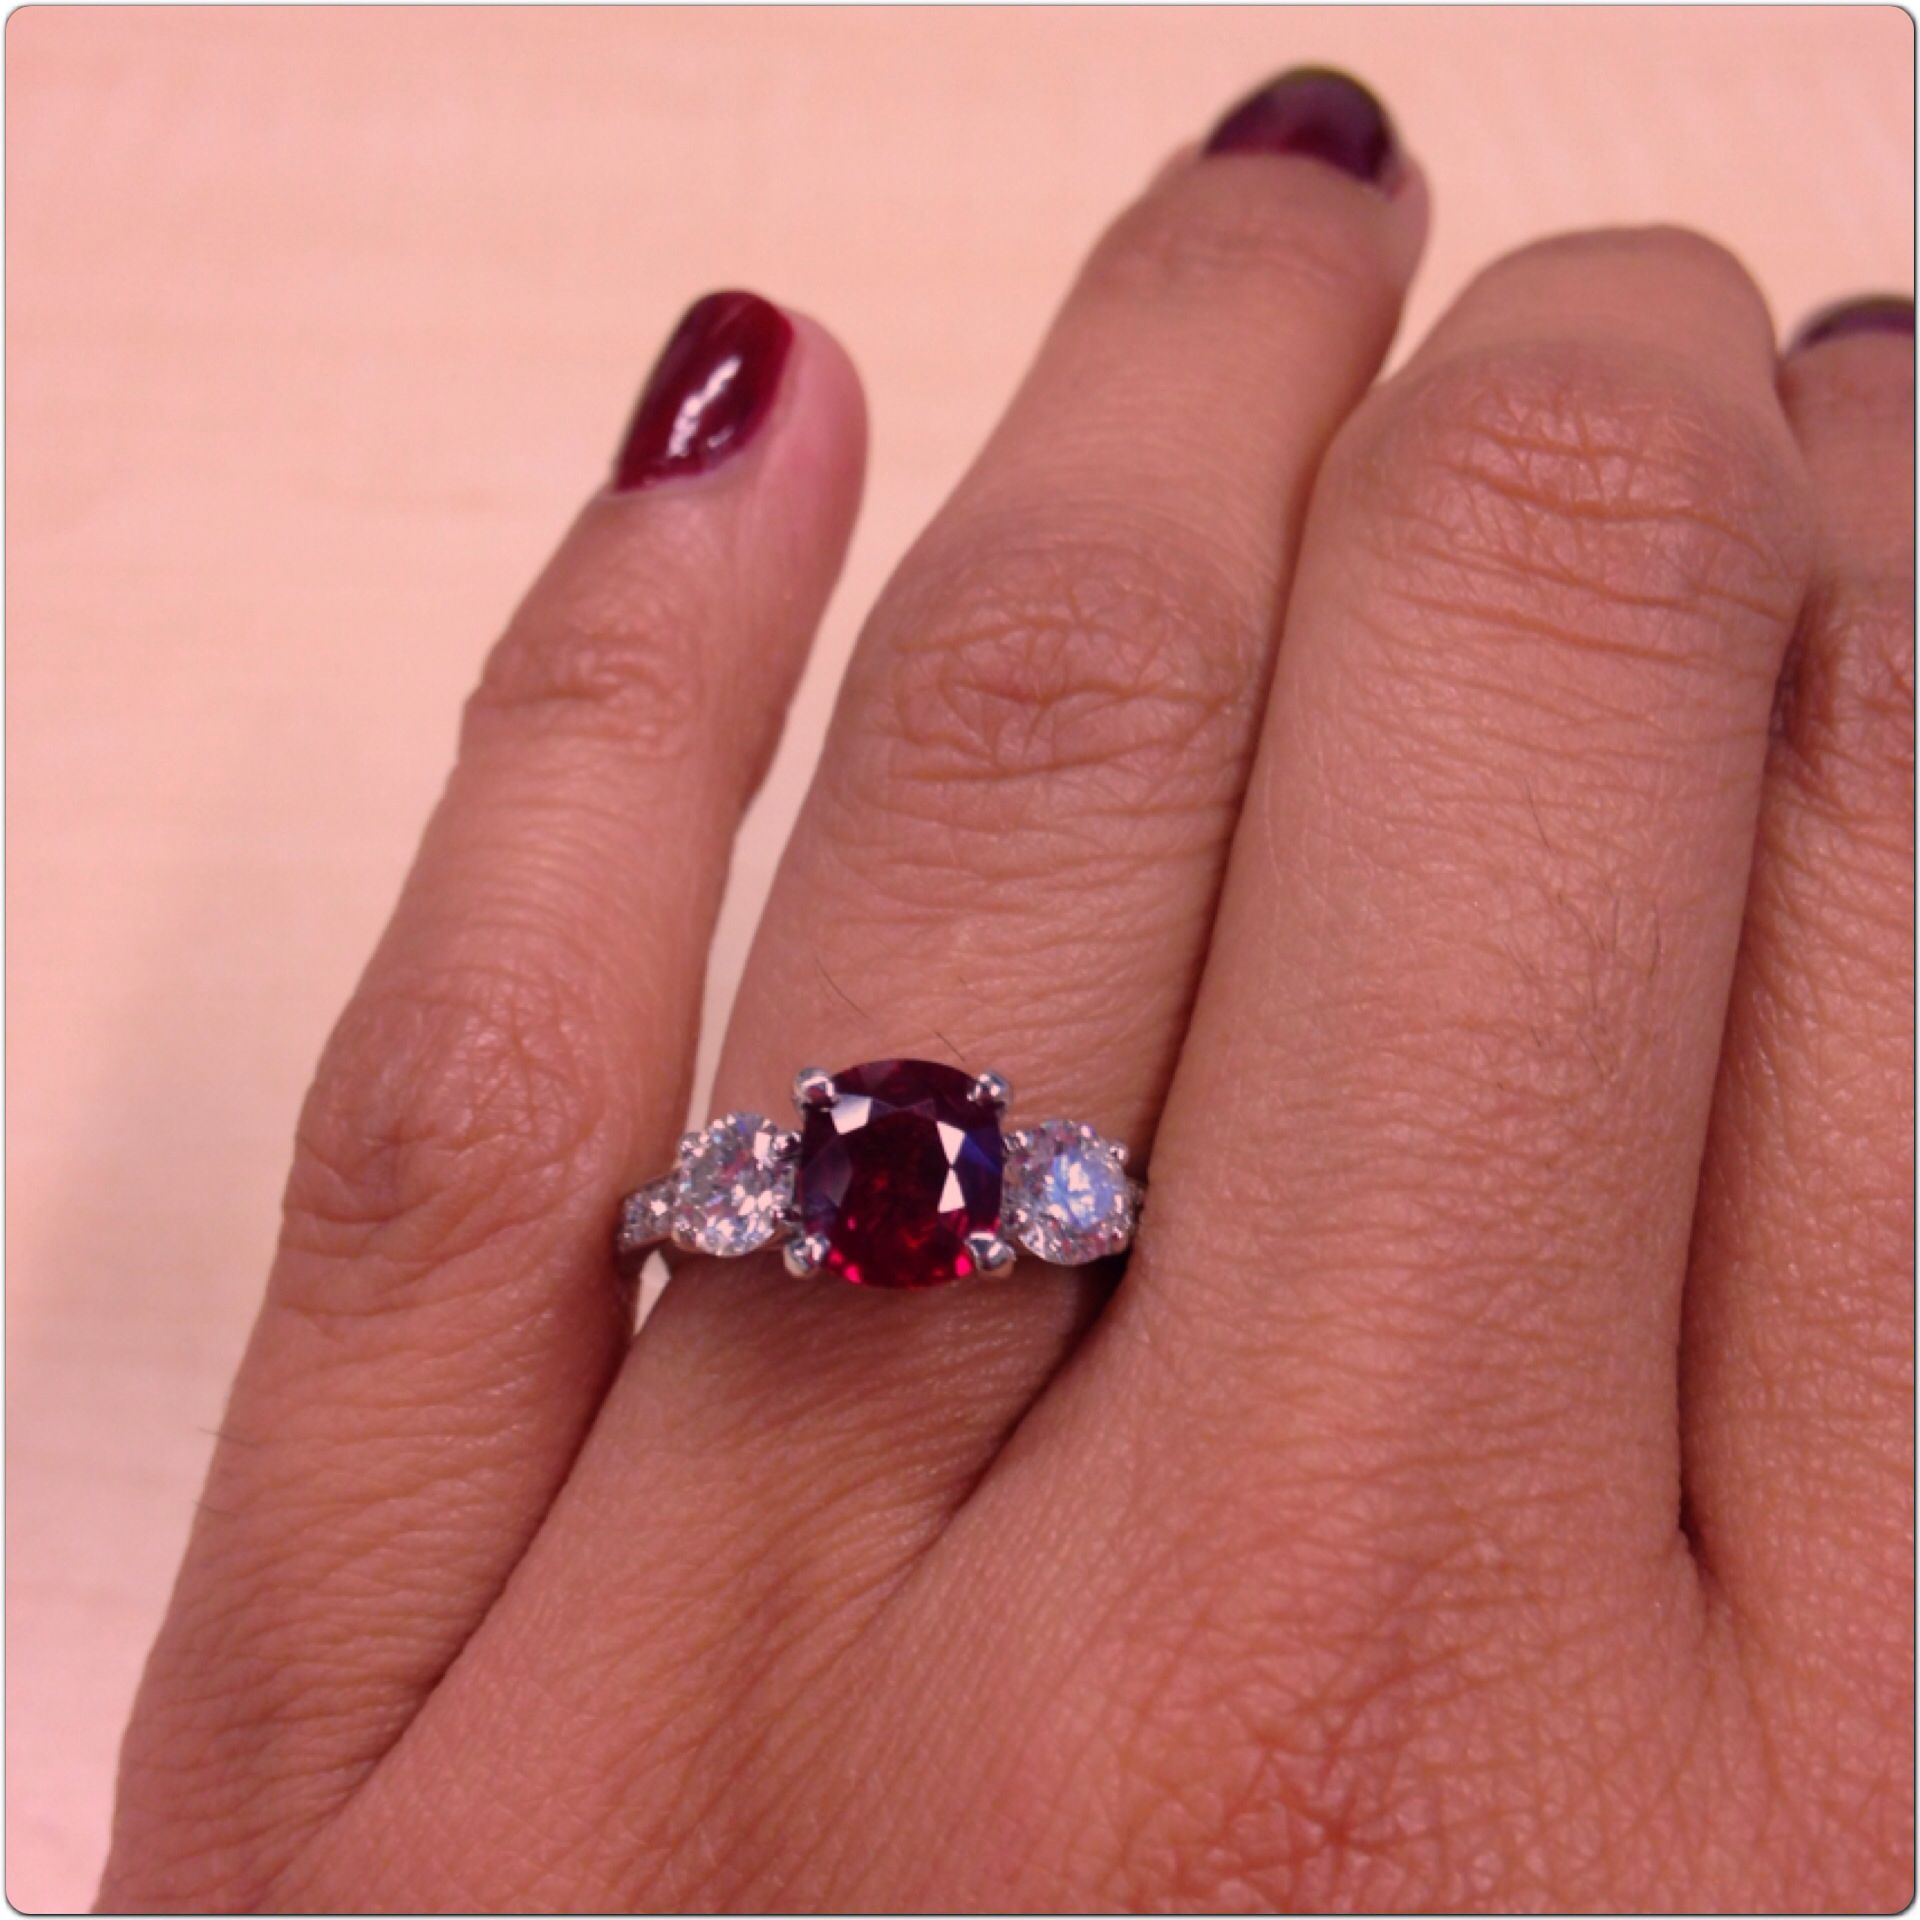 My ruby engagement ring! | Sparkles | Pinterest | Engagement, Ring ...